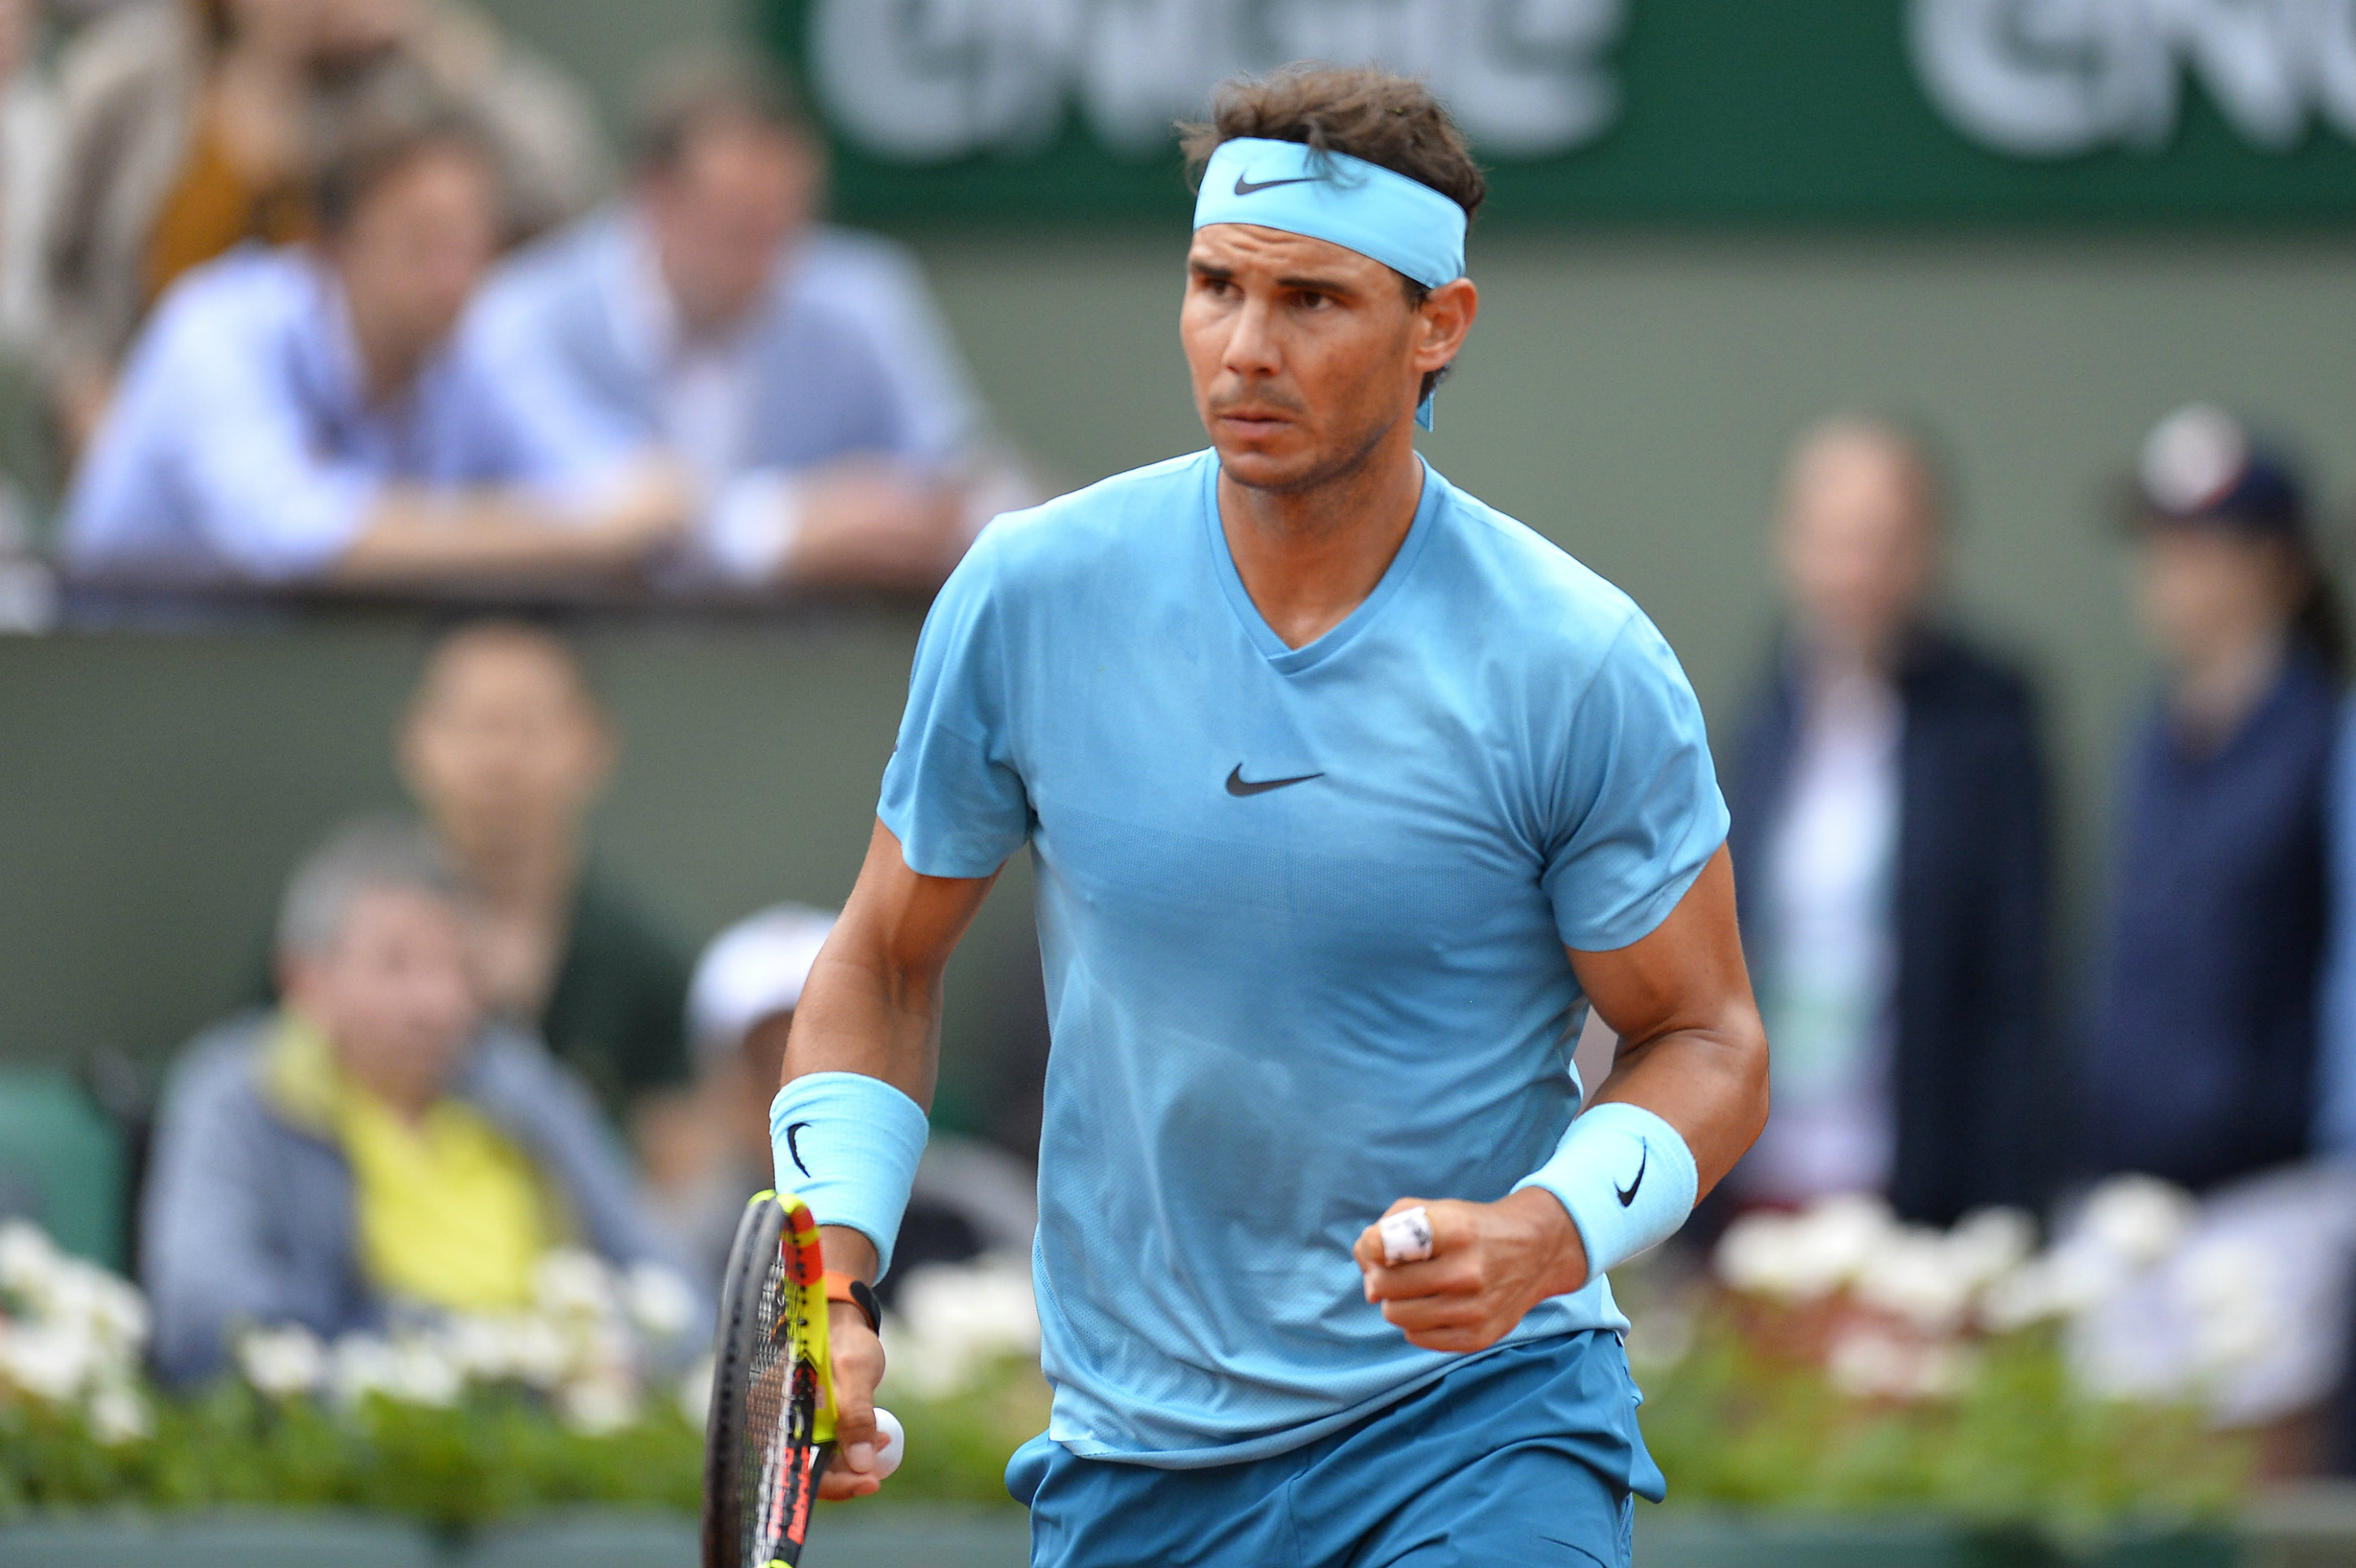 Rafael Nadal pulls out from the Queen's for the third consecutive year